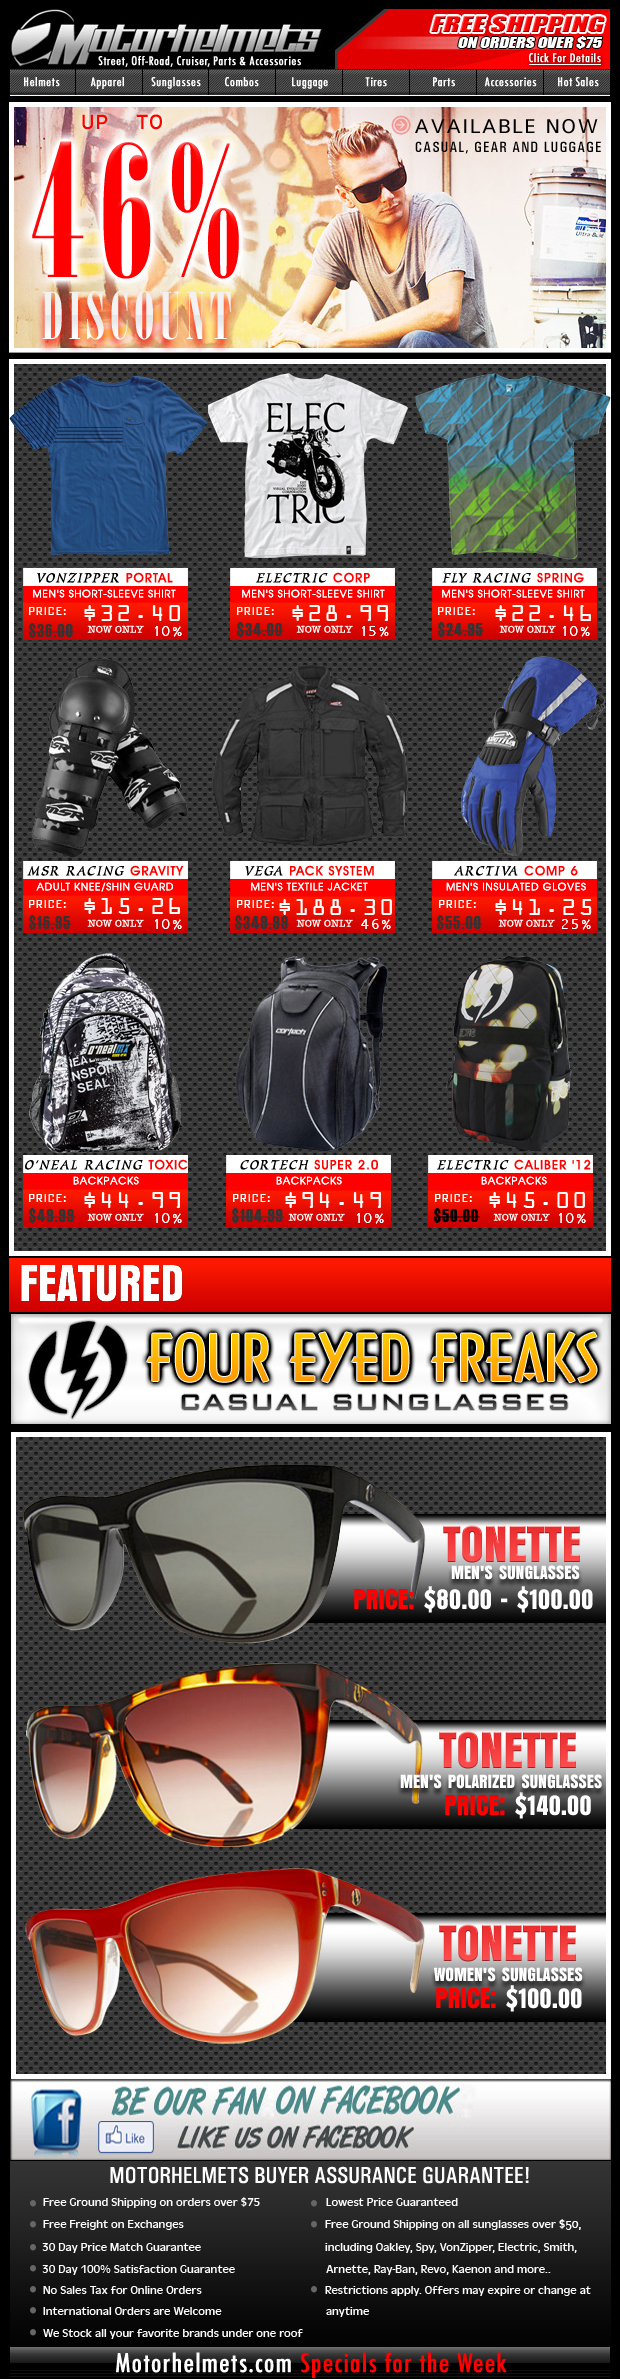 Save Up to 46% Off on Gear & Apparel from MSR, Fly, Vega, Electric and more!